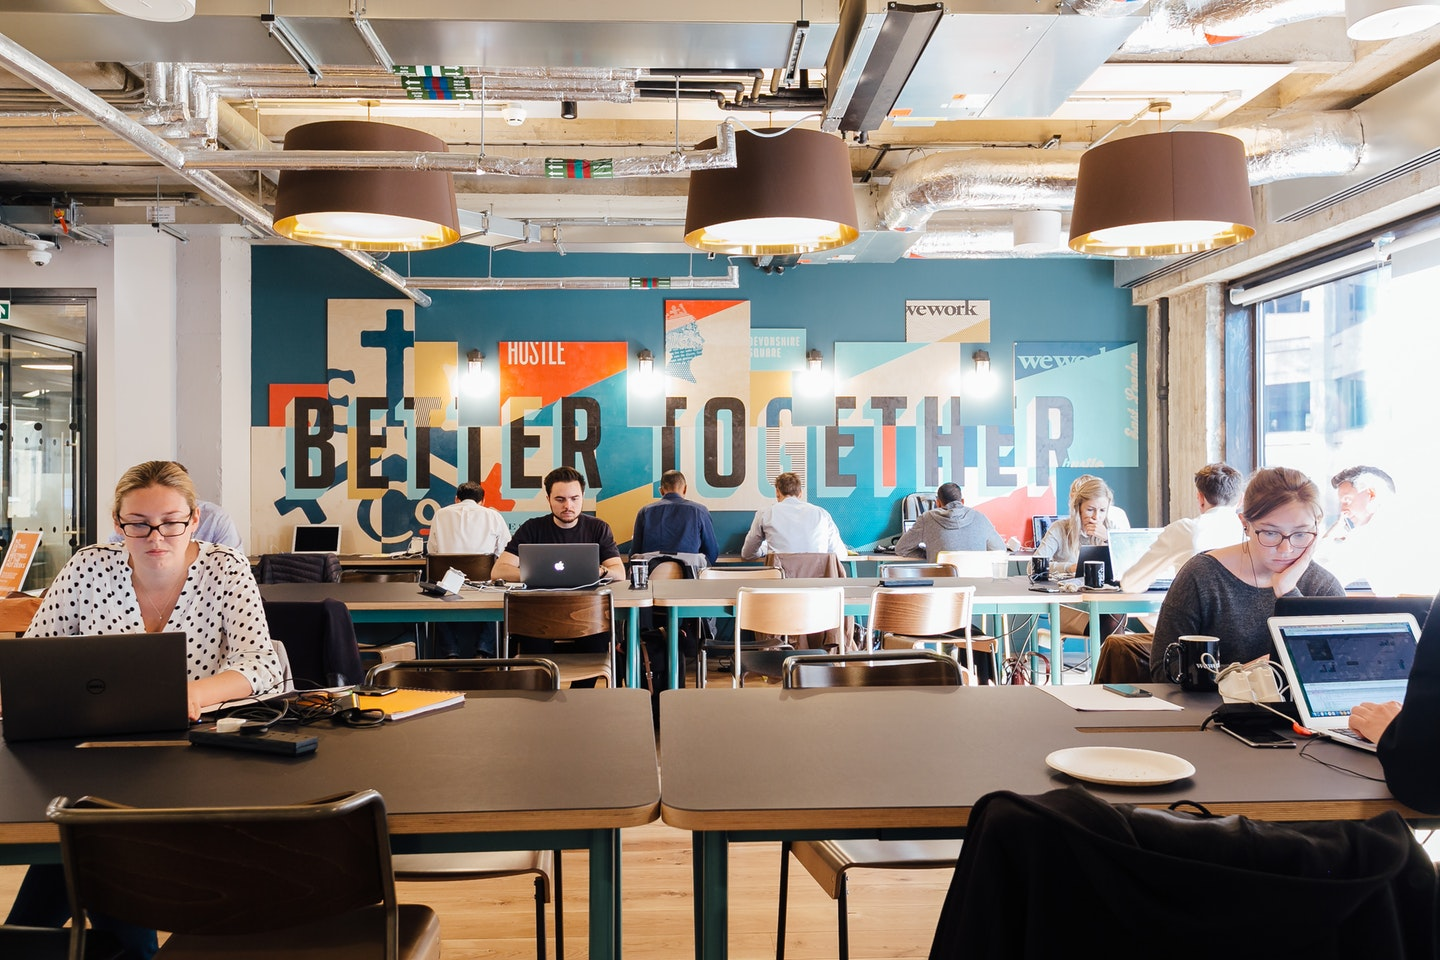 wework - 9 Devonshire Square, EC2 - London (Shared and Private Offices)